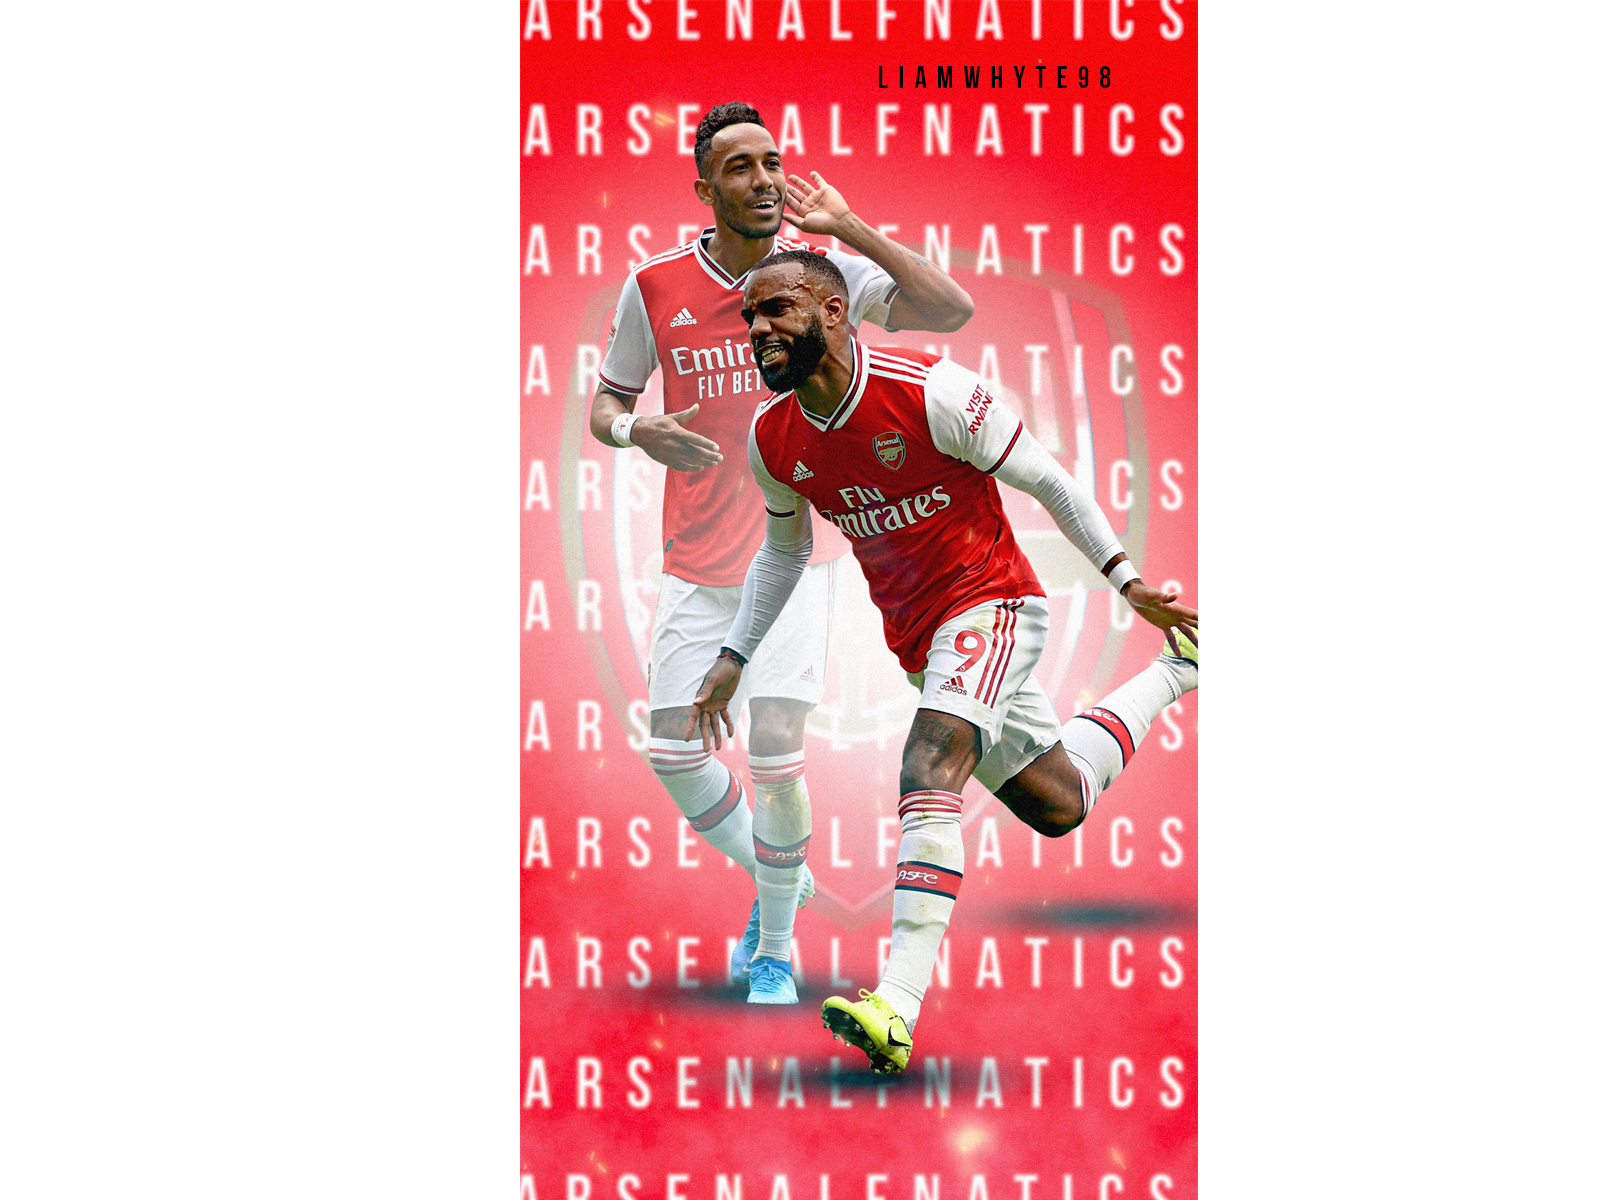 Arsenal Fc Wallpaper Lacazette Aubameyang By Liam Whyte On Dribbble